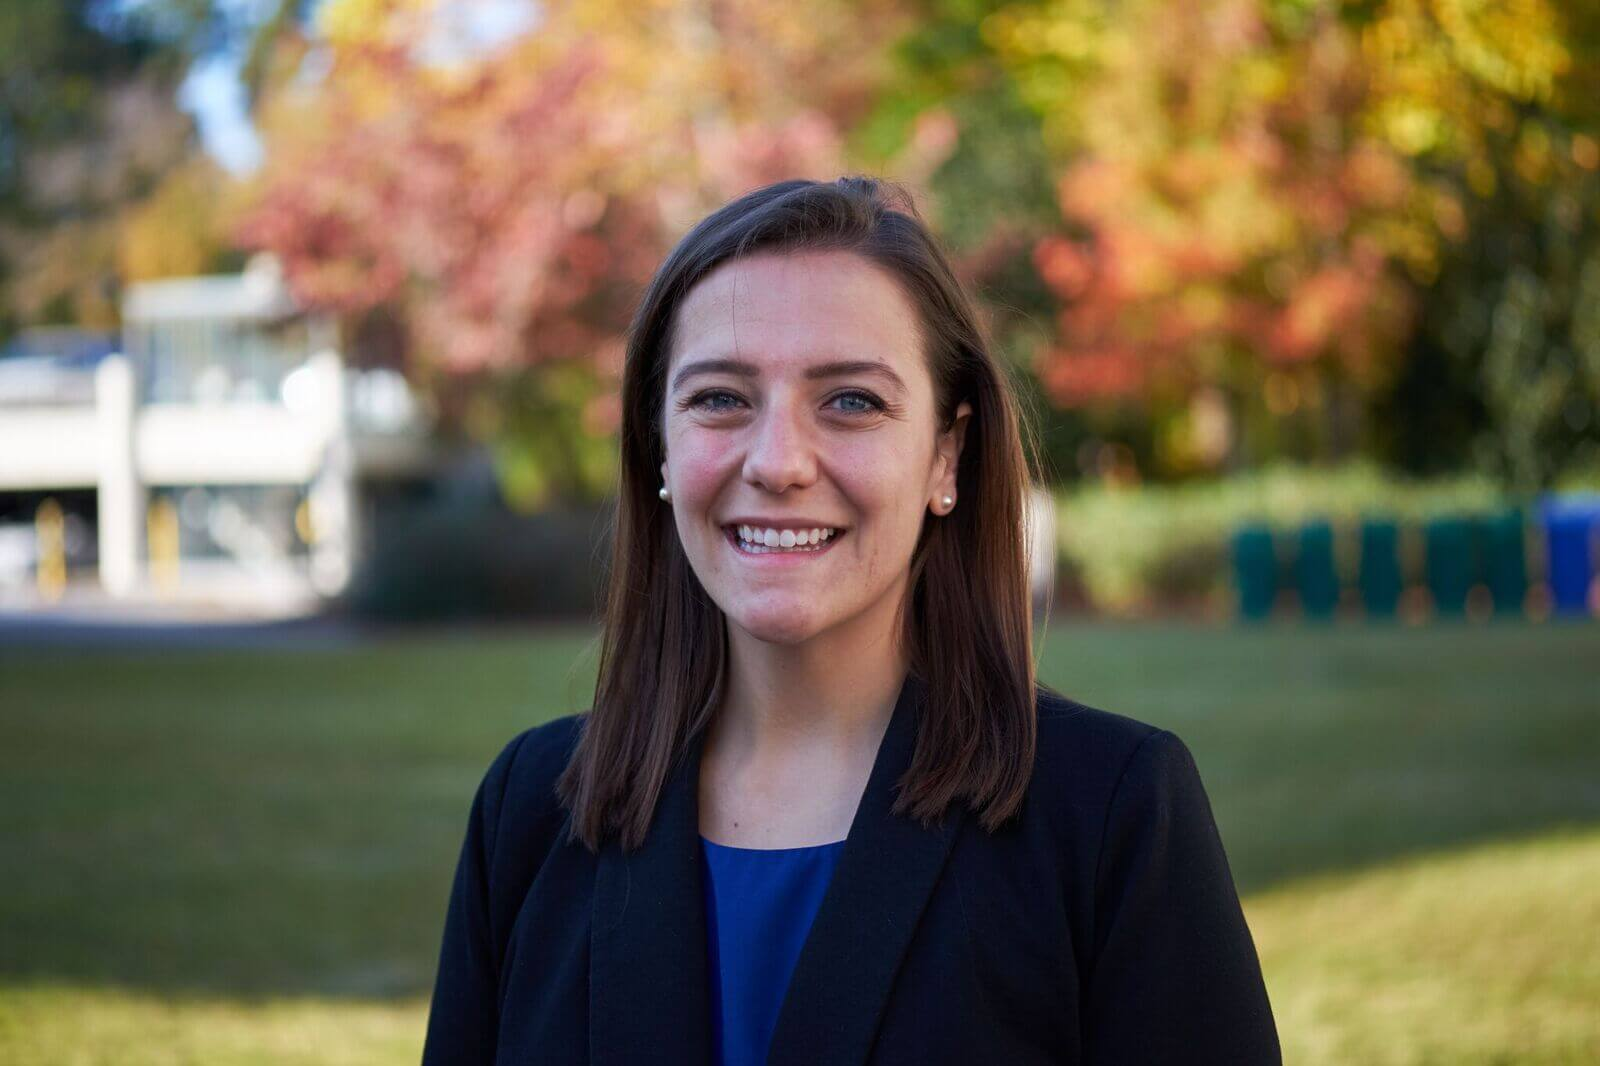 Catie Mannerino, MBA candidate at Goizueta school of business